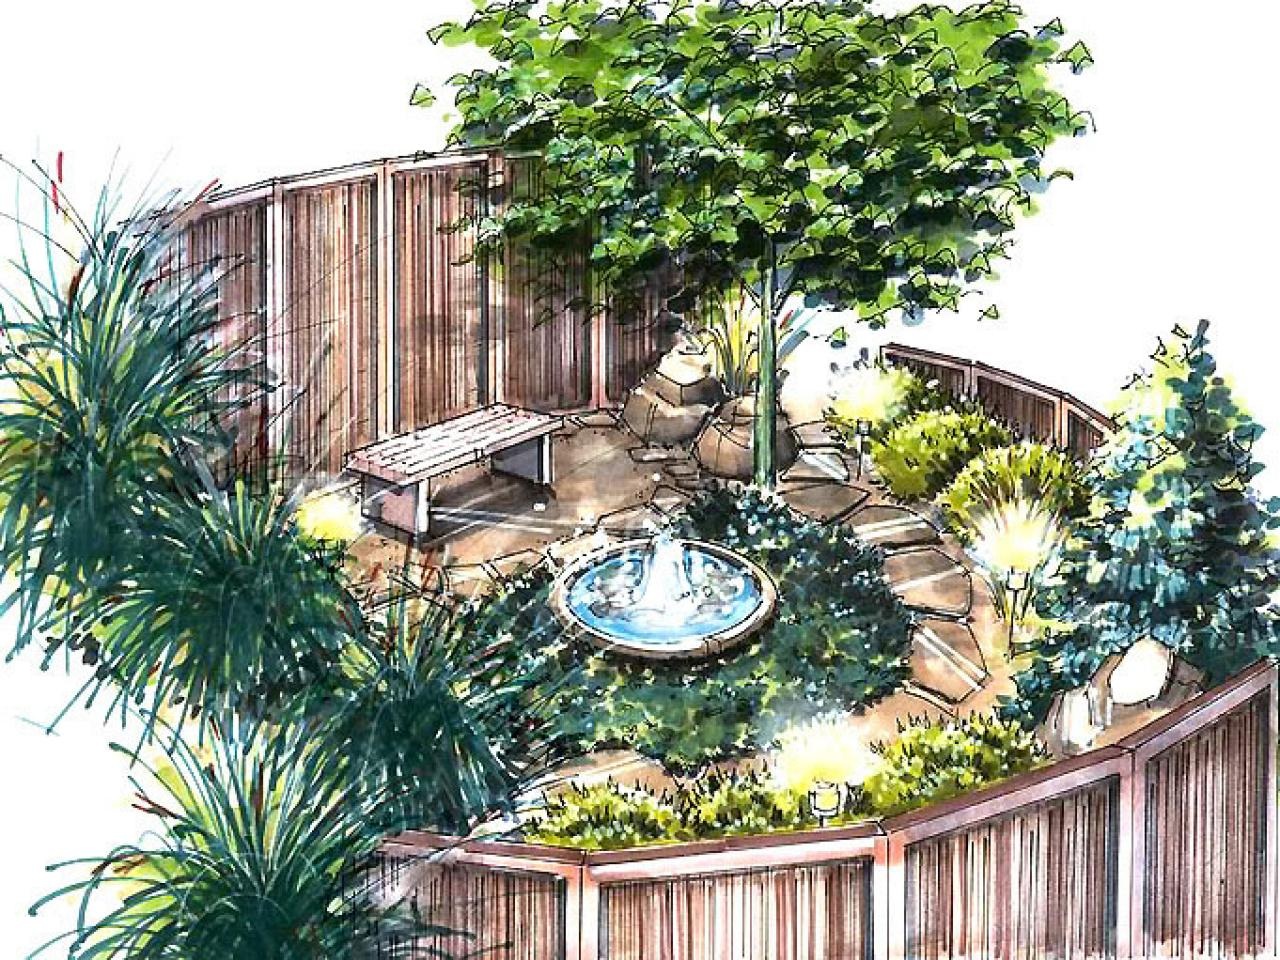 A meditation garden plan hgtv for Garden plans and plants